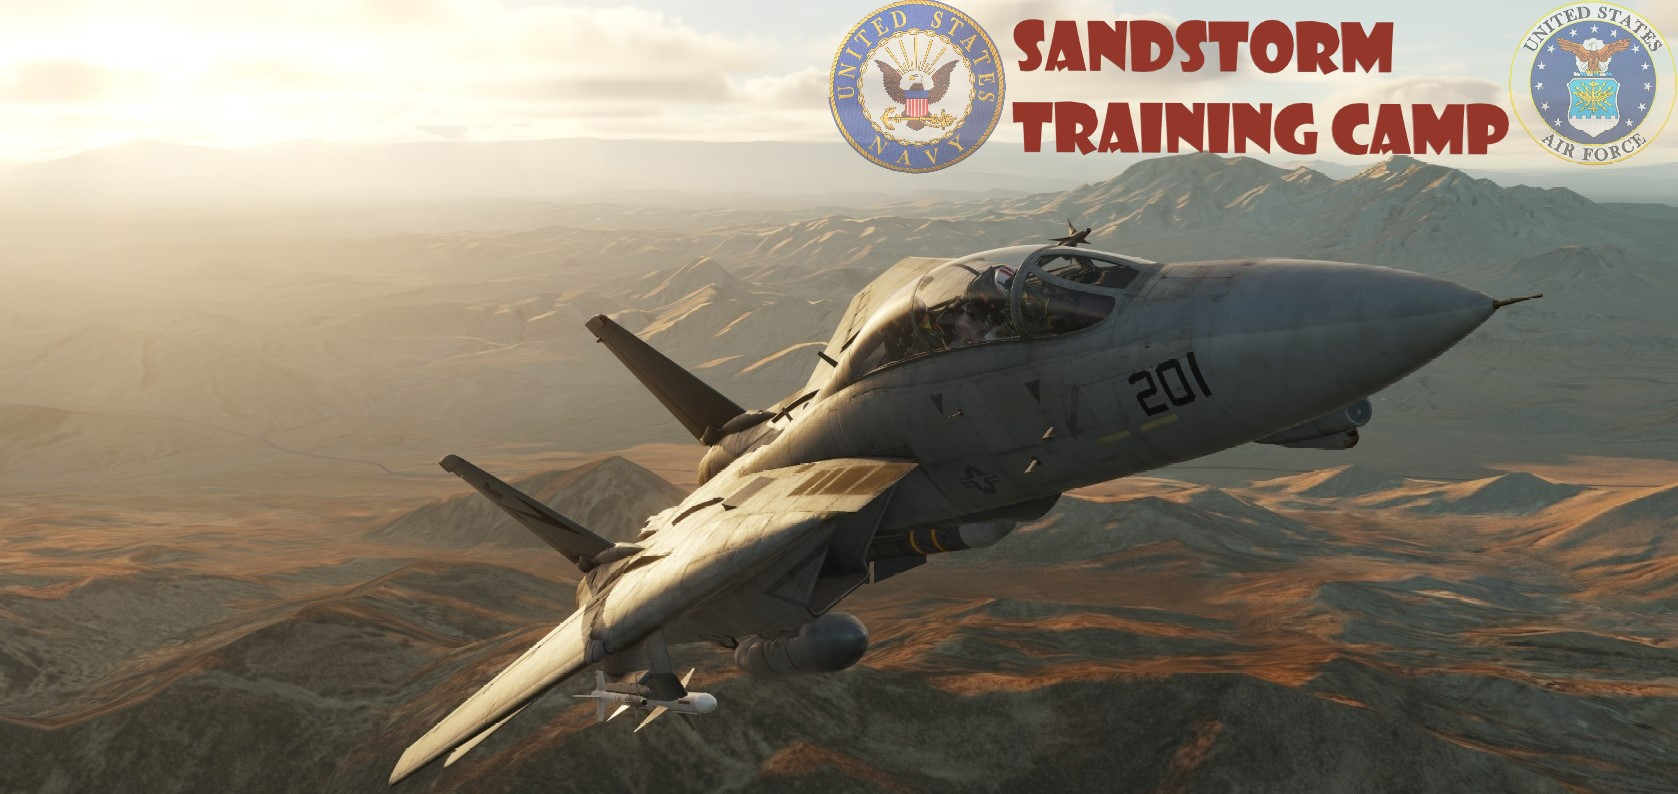 Sandstrom Training Camp mini campaign